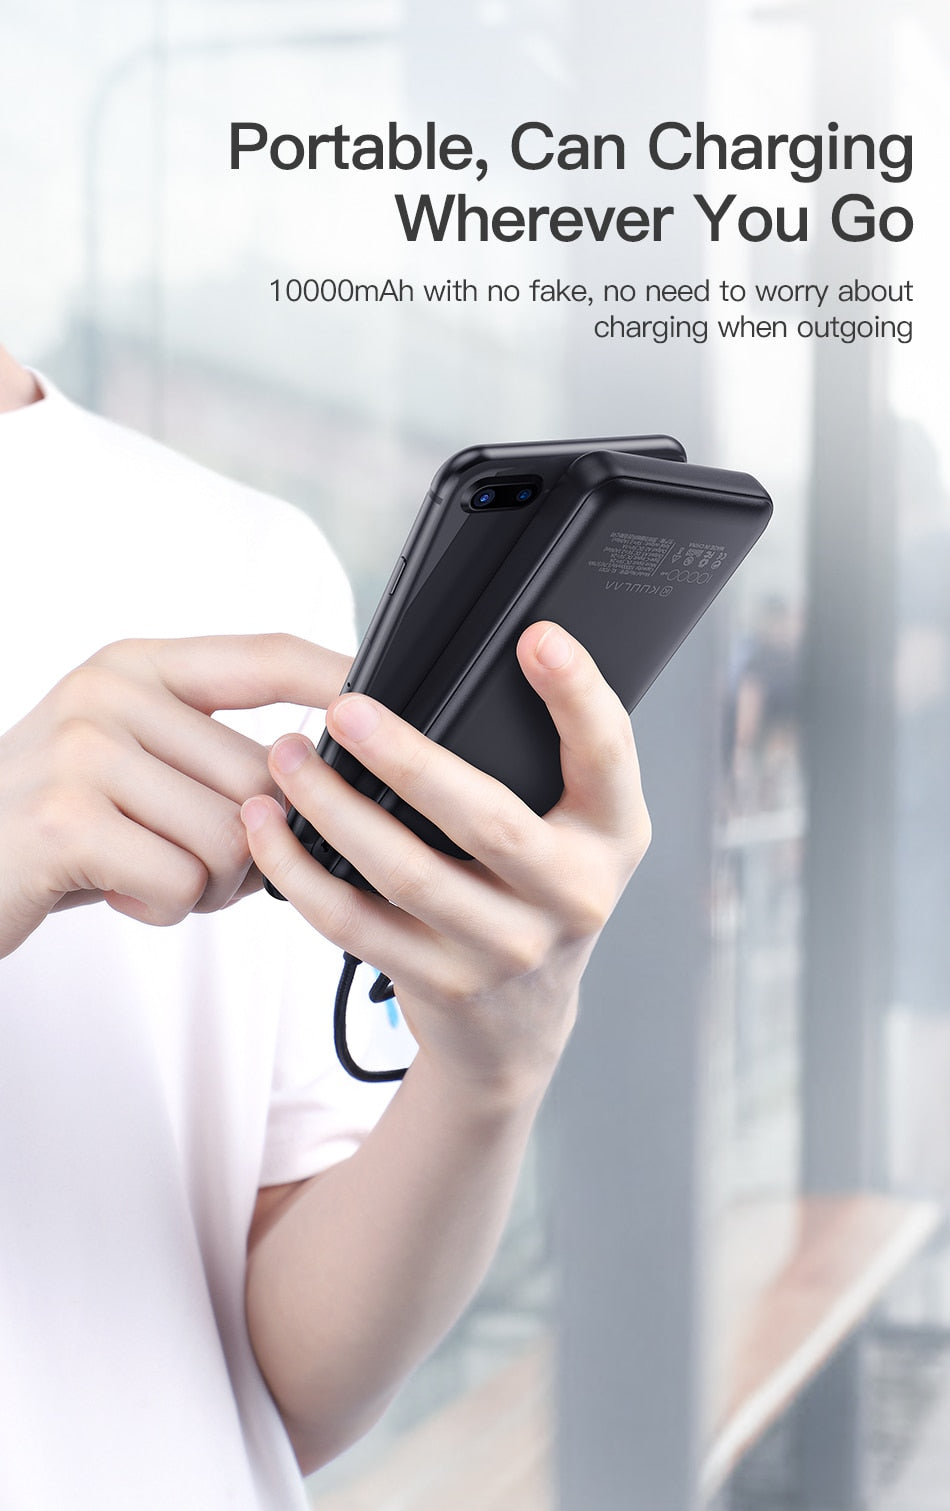 Mobile Portable Charging Power Bank and 10,000 mAh External Battery Charger For iPhone and Smartphones